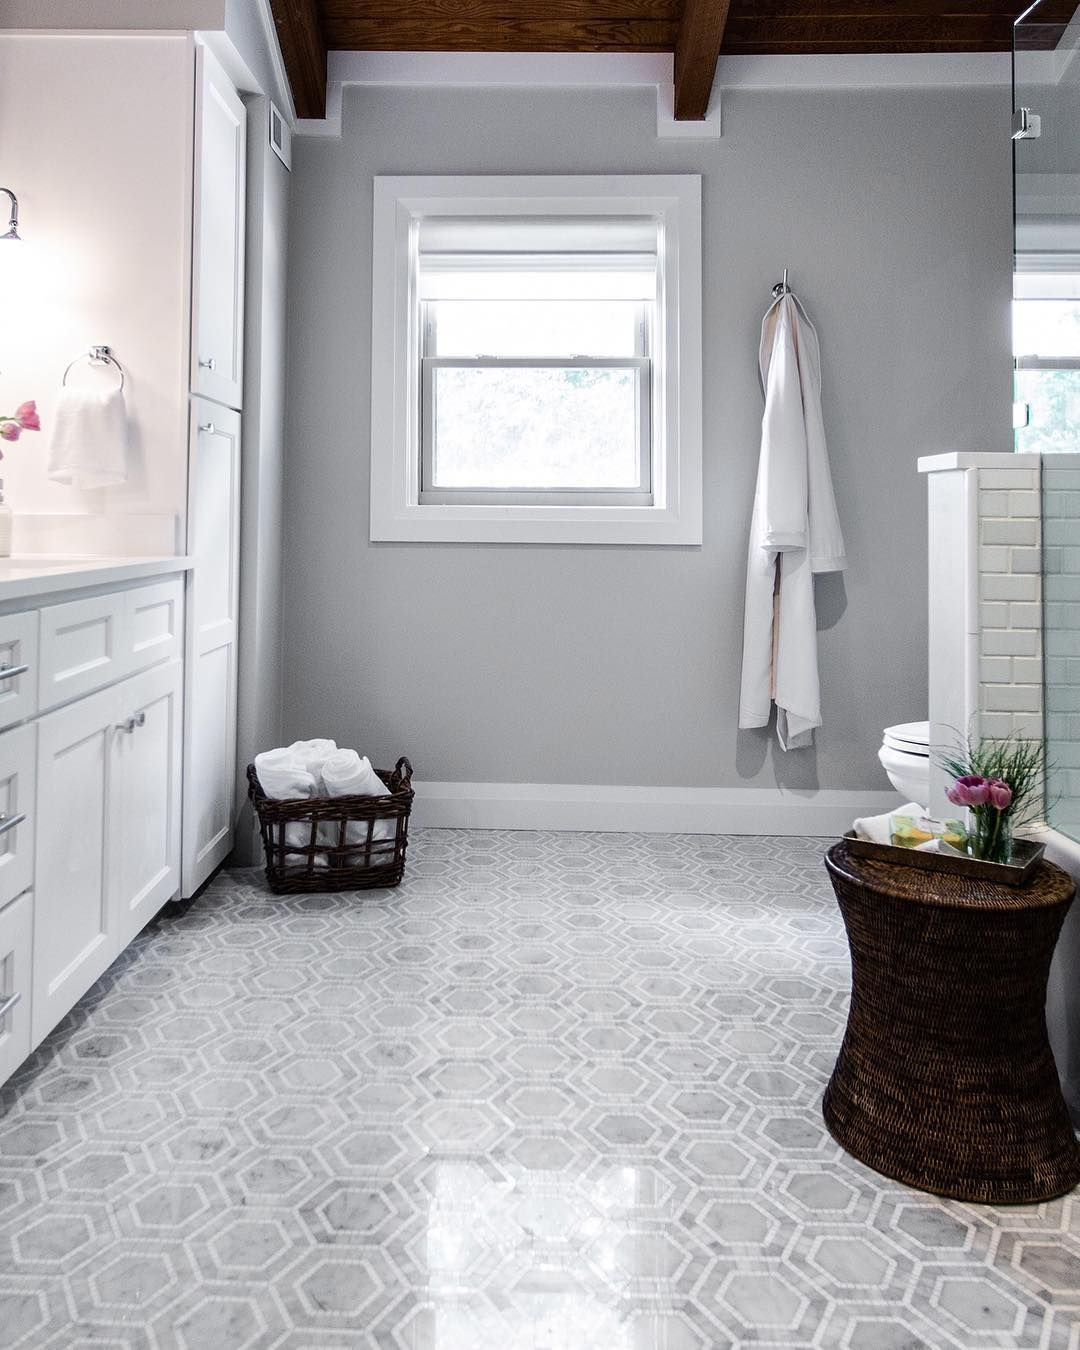 Property Brothers On Instagram Tiles For Days Here S A Sneak Peek At A Bathroom Reno From An U Small Bathroom Remodel Bathrooms Remodel Bathroom Design